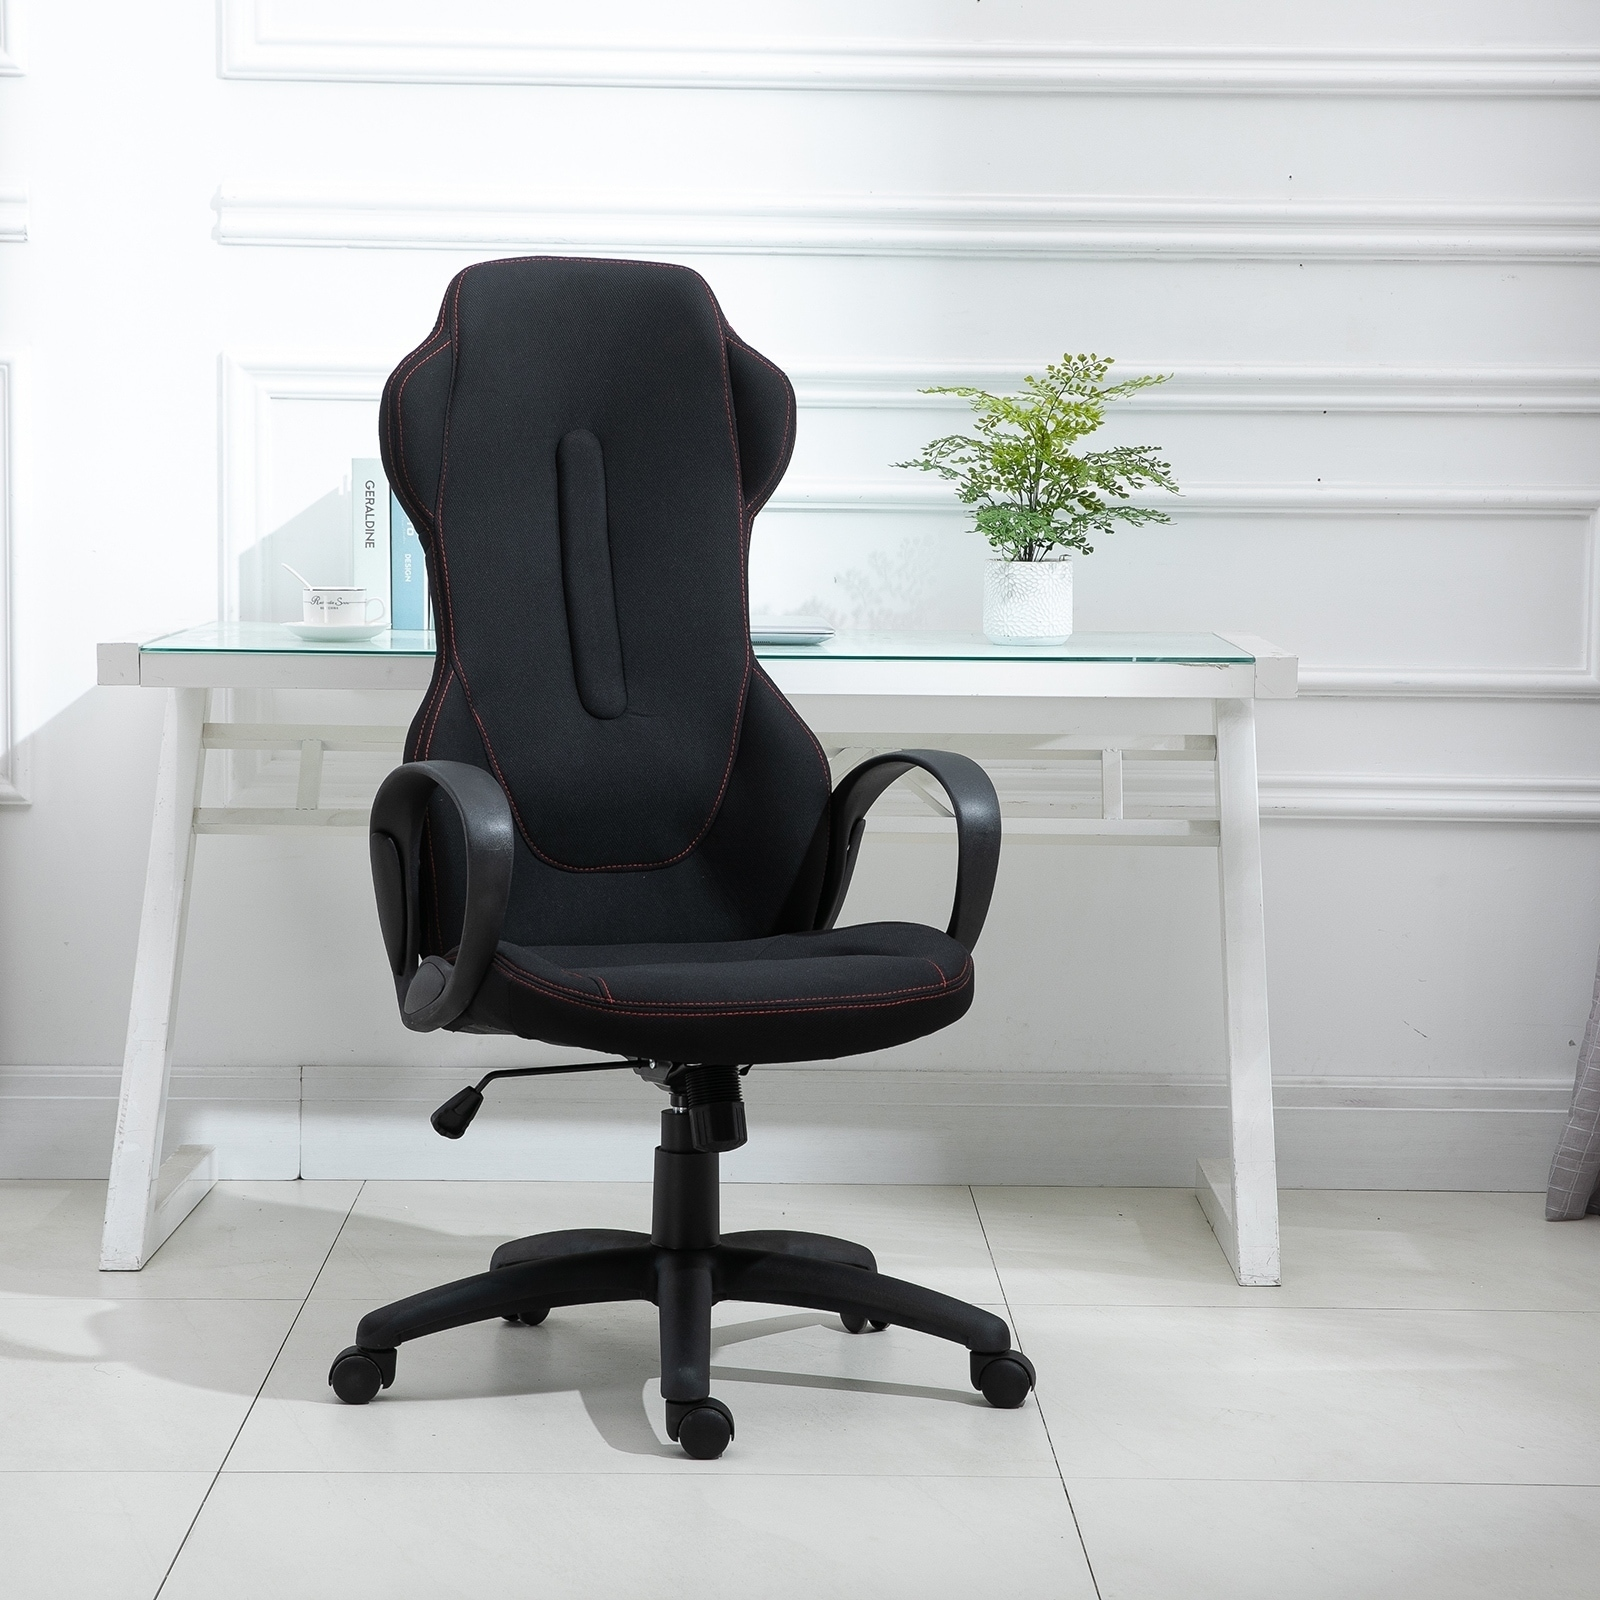 Vinsetto High Back Racing Style Gaming Office Chair Ergonomic PC Computer, on blue race car desk chair, retro style office chair, racing computer chair, racing furniture, camaro racing car office chair, antique style office chair, audi racing office chair, gt omega pro racing office chair, sitting in a chair, racing seats, racing chair xbox one, western style office chair, car style office chair, racing style swivel chair,